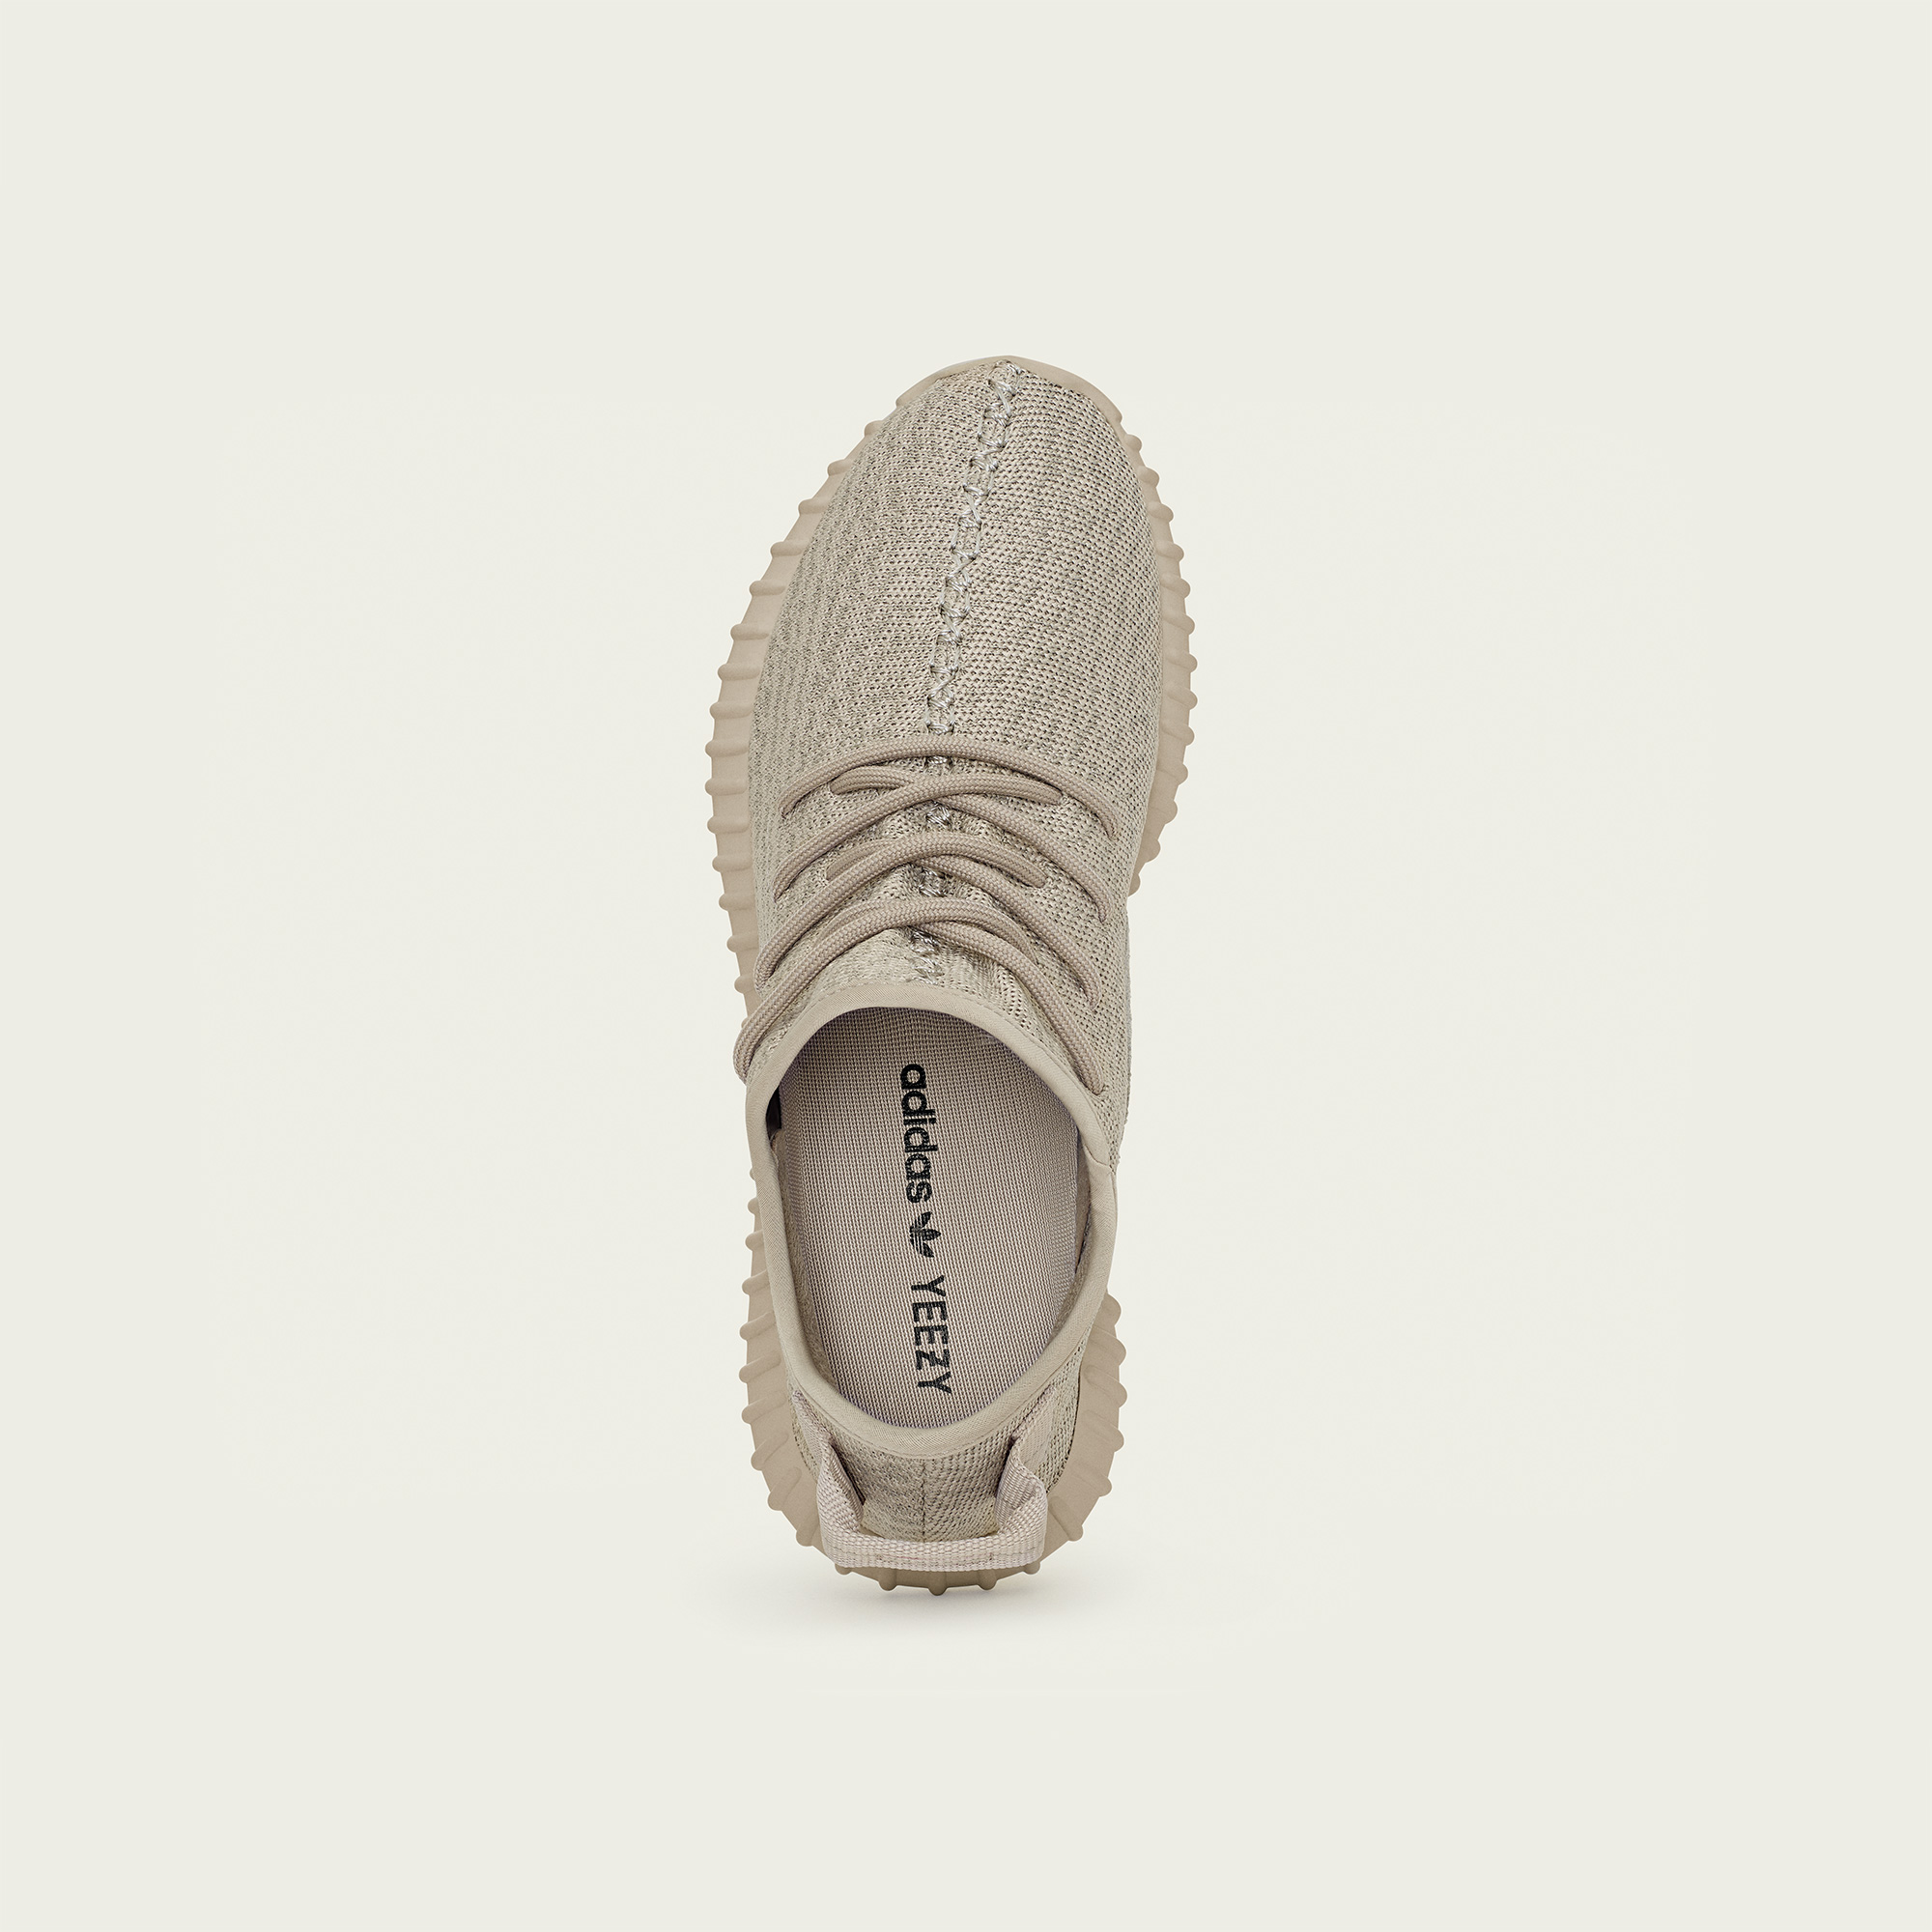 Adidas Yeezy 350 Boost White • Kicks On Fire